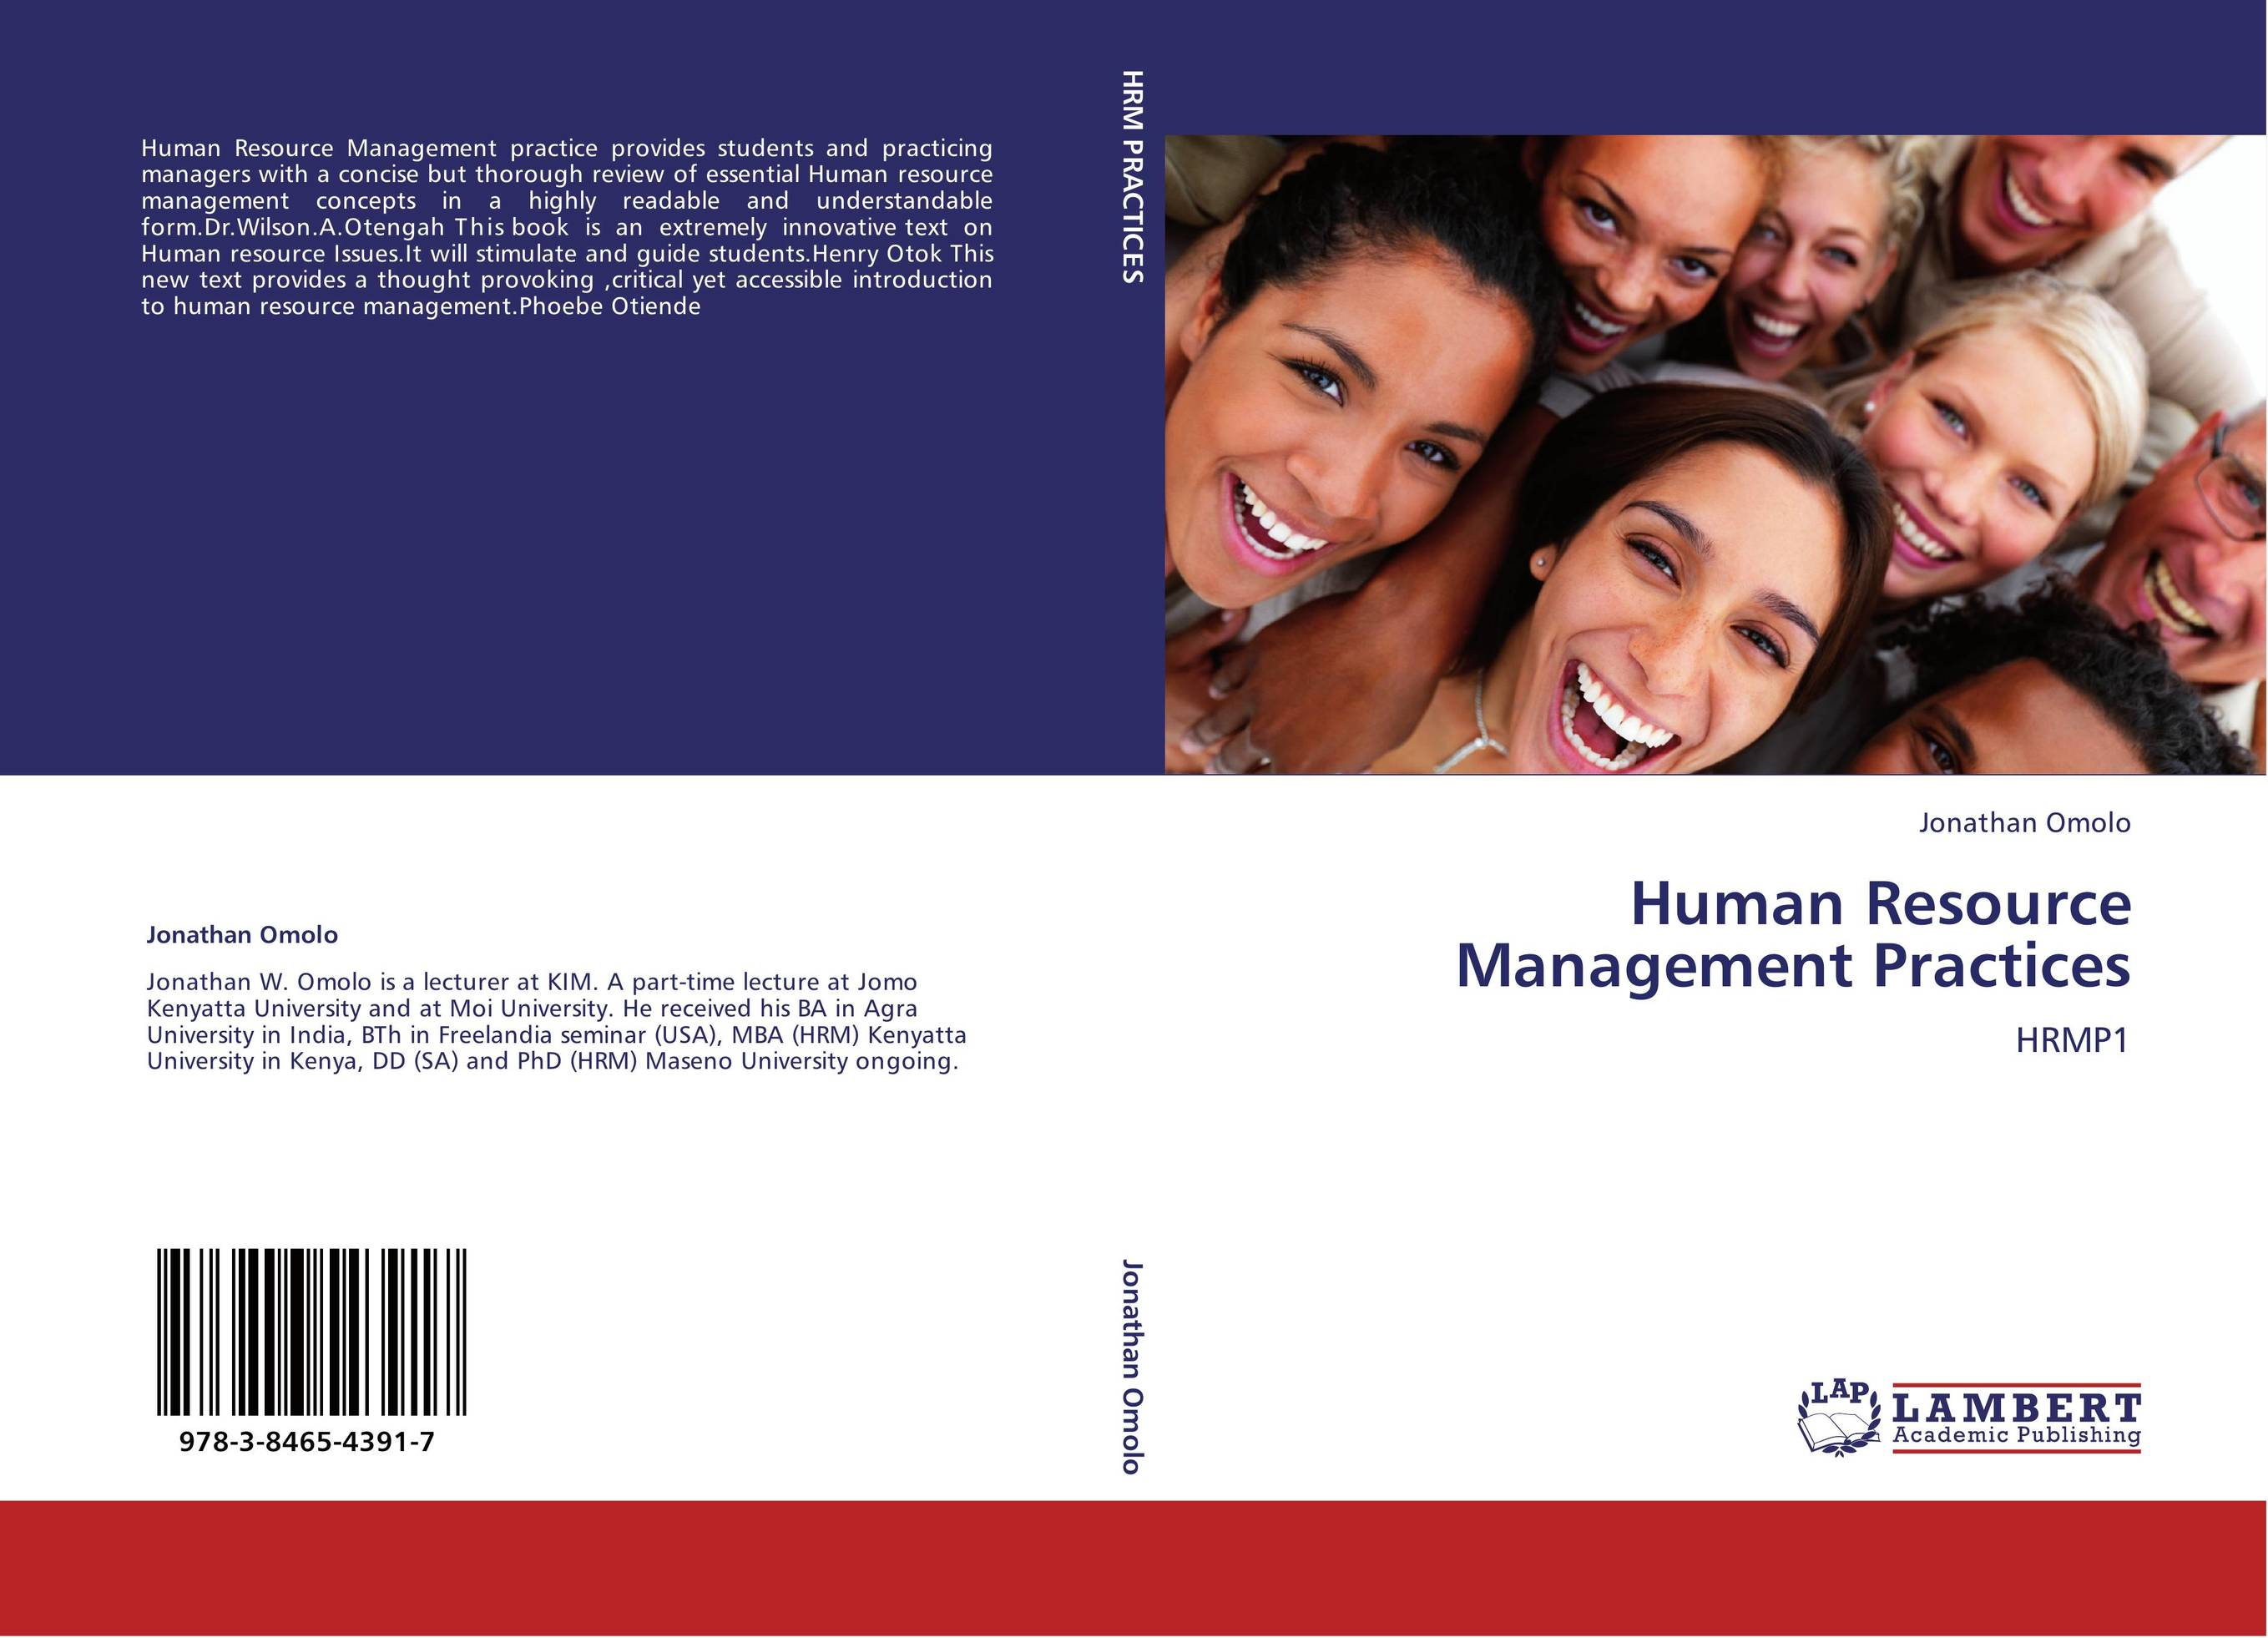 human resource management practices and employees' Strategic human resource management, in today's business environment, relies on software, digital equipment, technology and proactive human intelligence to stimulate employee engagement, attract and retain top talent, manage succession planning and meet company short- and long-term goals.